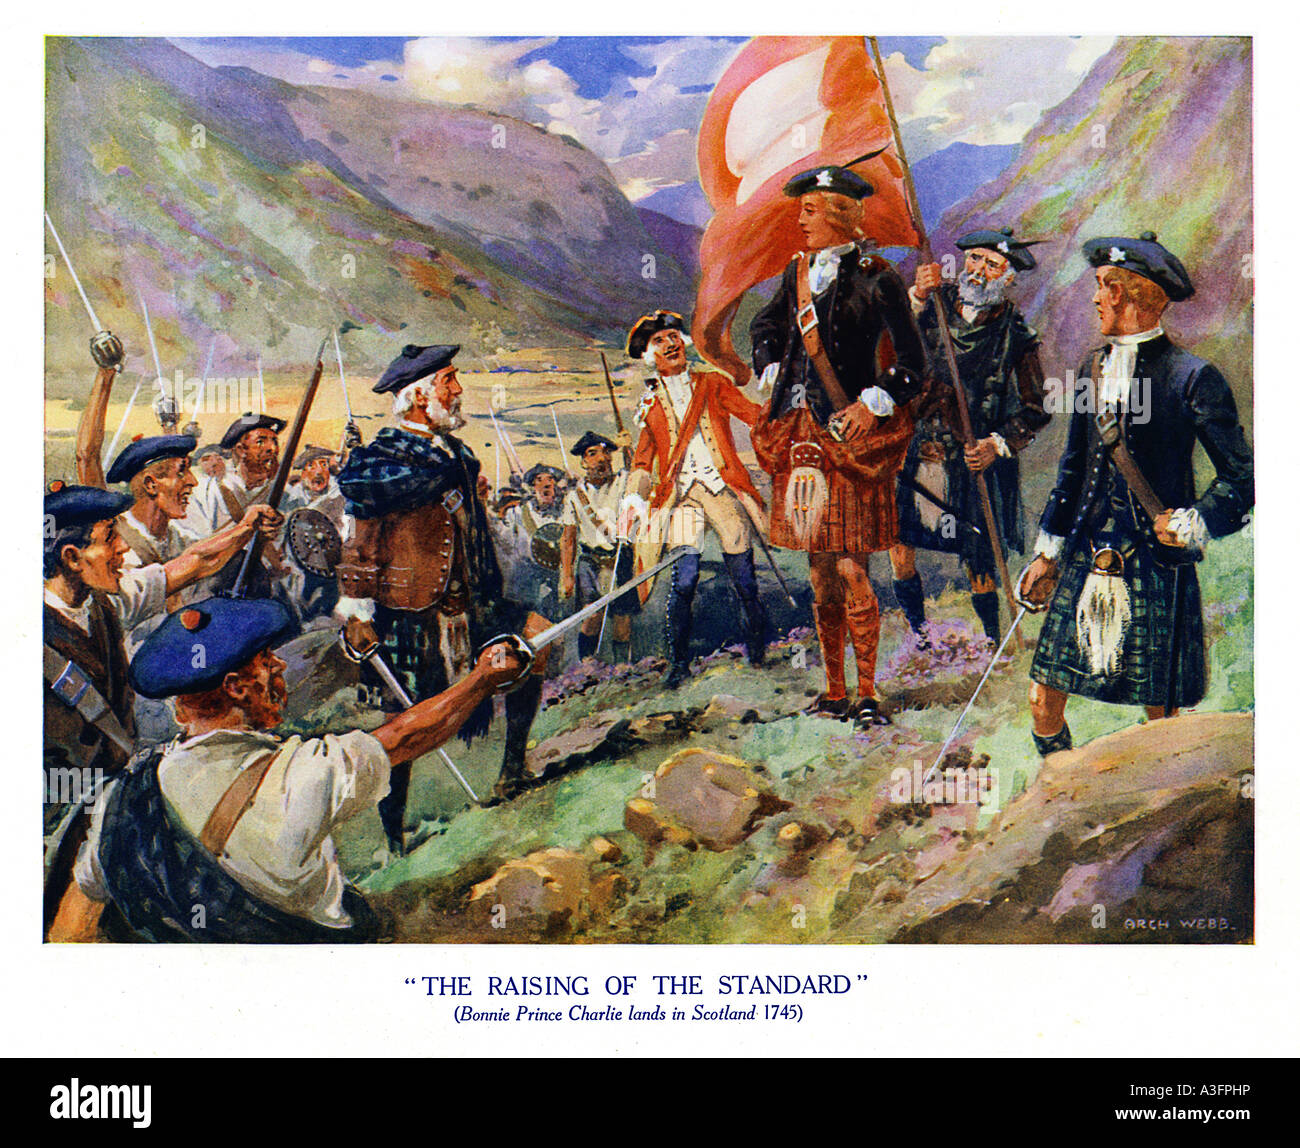 Raising The Standard 1745 1930s illustration of Bonnie Prince Charlie Young Pretender at the start of the 1745 rebellion - Stock Image